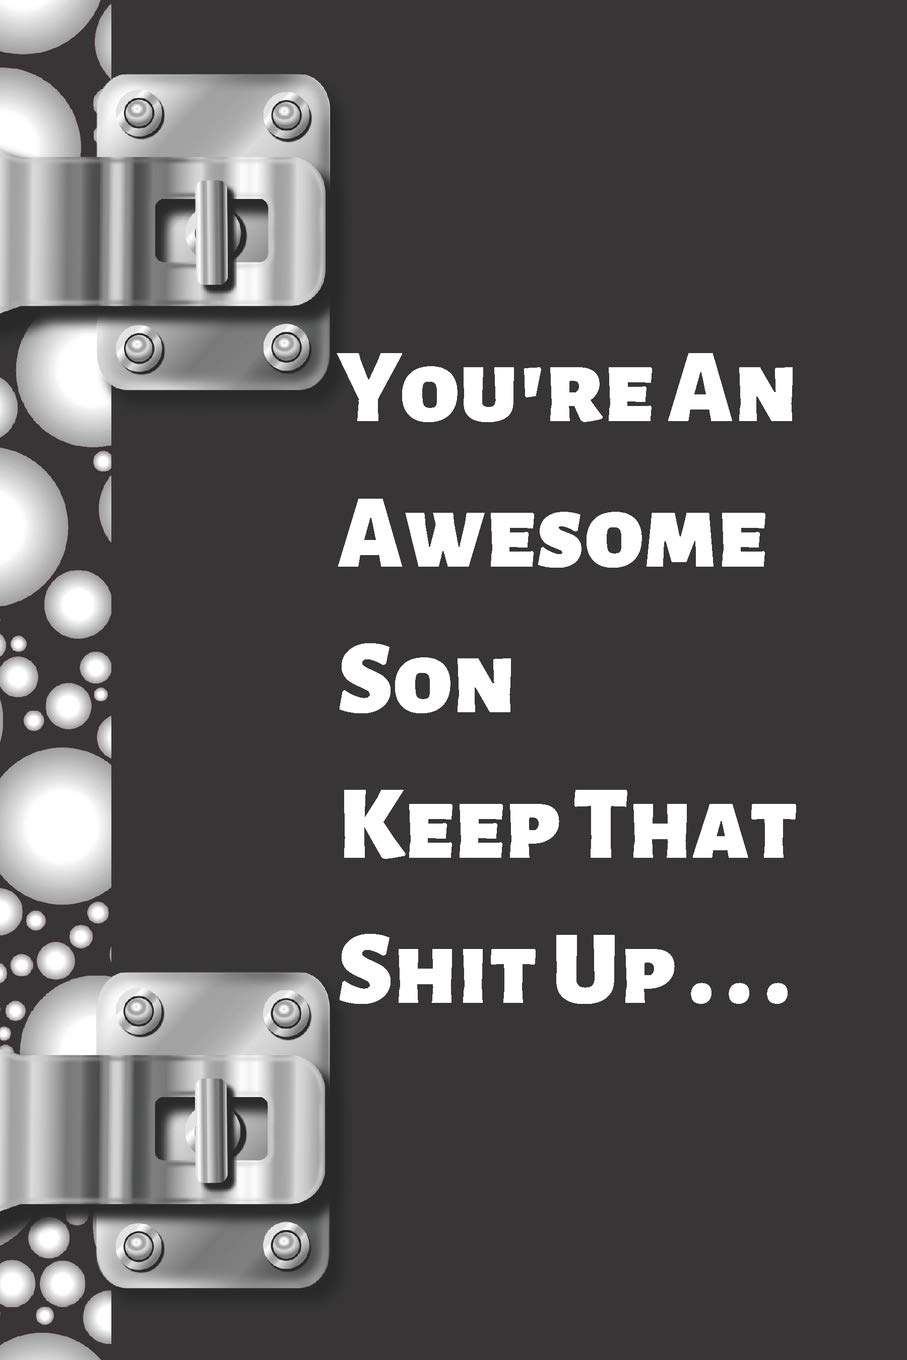 Your're An Awesome Son Keep That Shit Up   : Funny Sarcastic